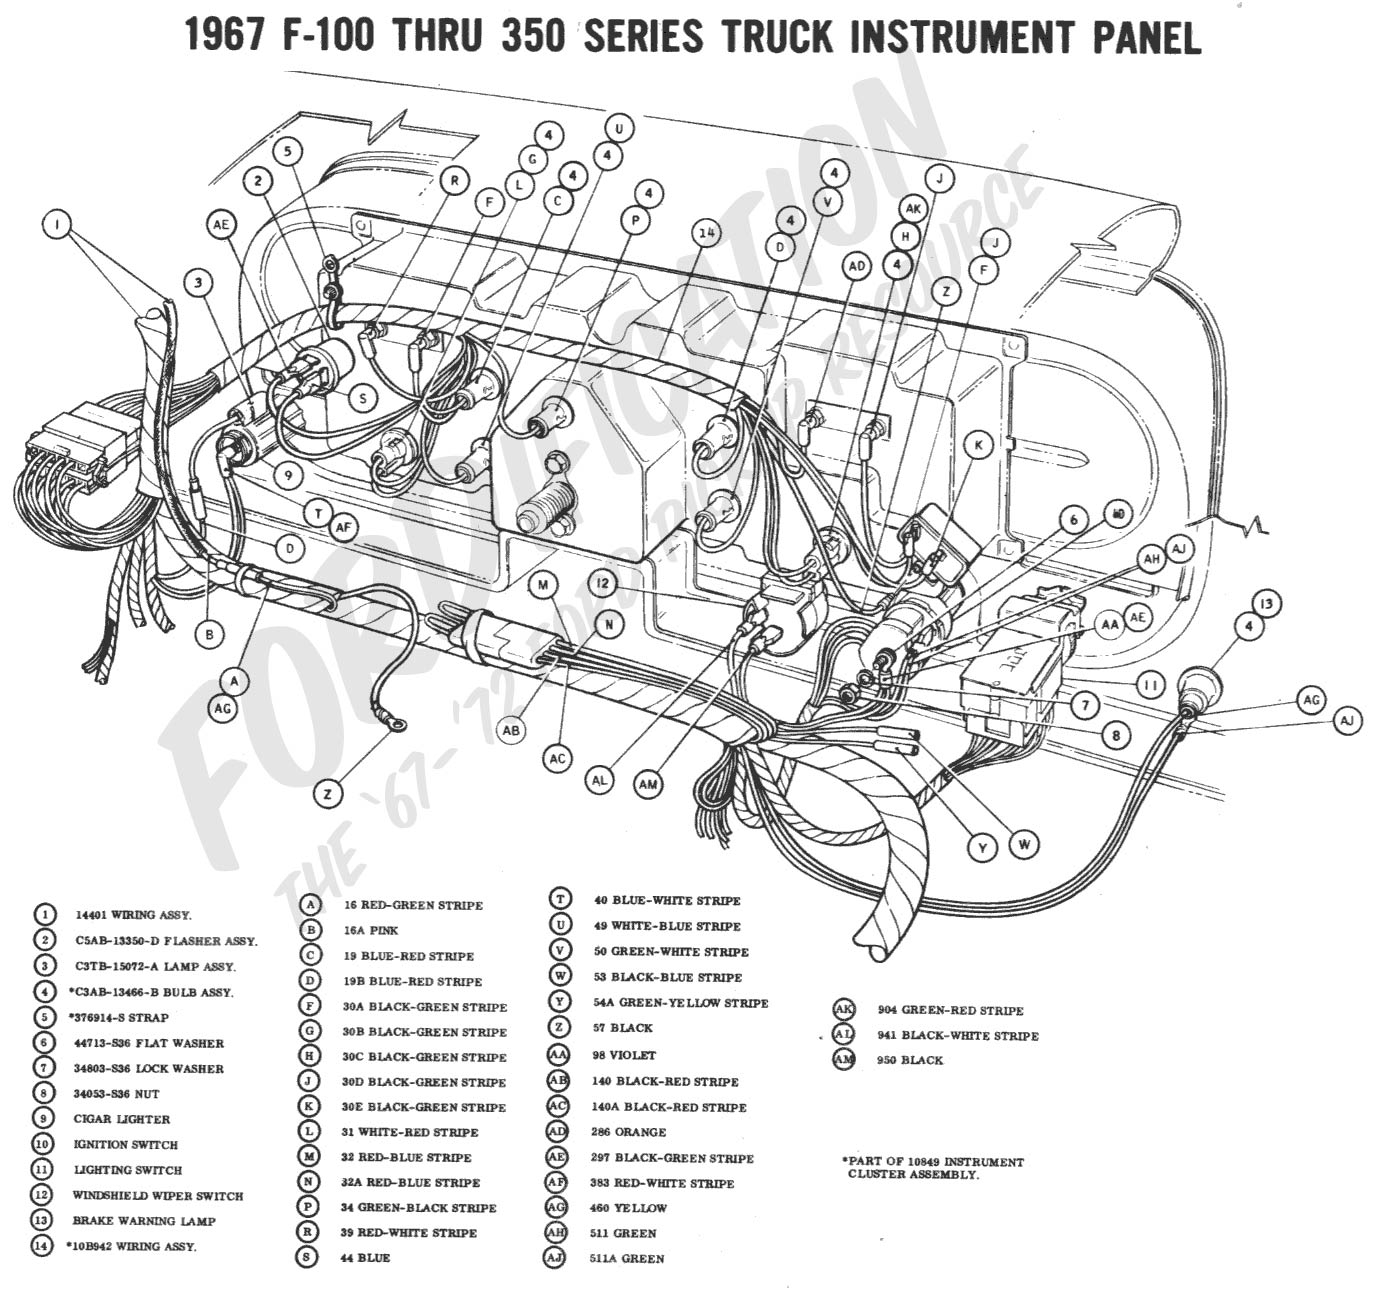 Motor Wire Harness Diagram on trailer wiring diagram, wire lights diagram, 1969 mustang wiring diagram, wire rope diagram, headlight diagram, actuator diagram, resistor diagram, wire gauge diagram, mirror diagram, schematic wiring diagram, throttle body diagram, cable diagram, fuse diagram, flywheel diagram, pin diagram, plug diagram, speedometer diagram, switch diagram, tube diagram, step diagram,